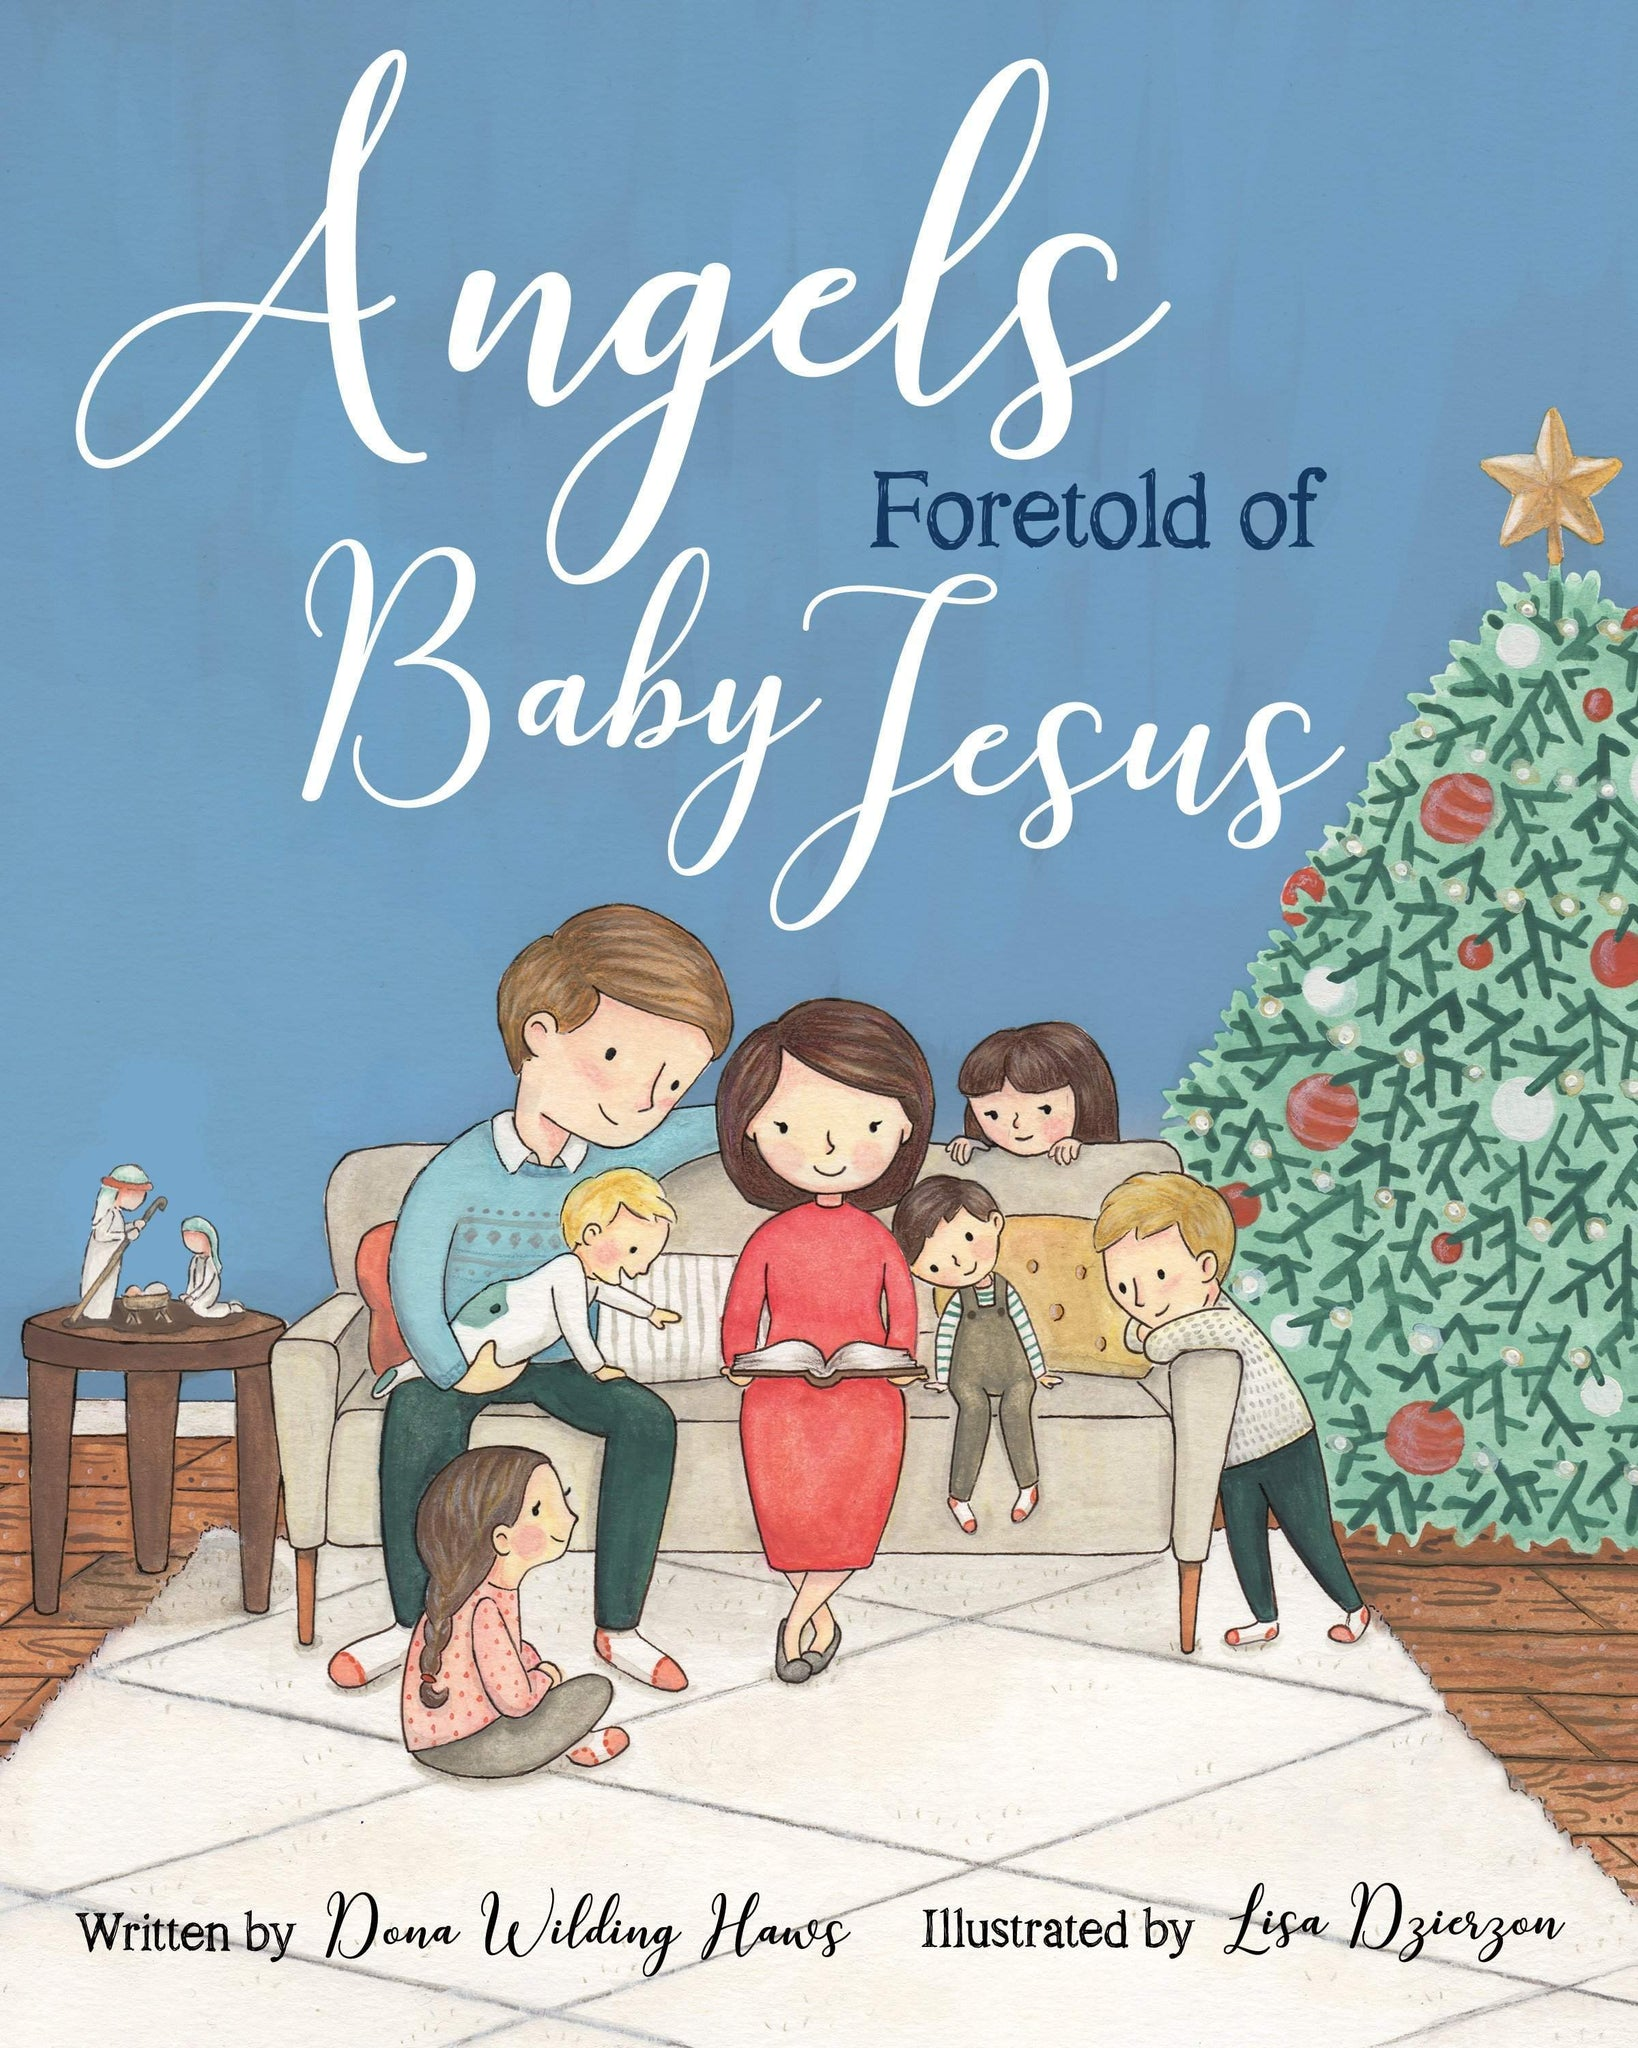 Angels Foretold of Baby Jesus by Dona Haws and Lisa Dzierzon